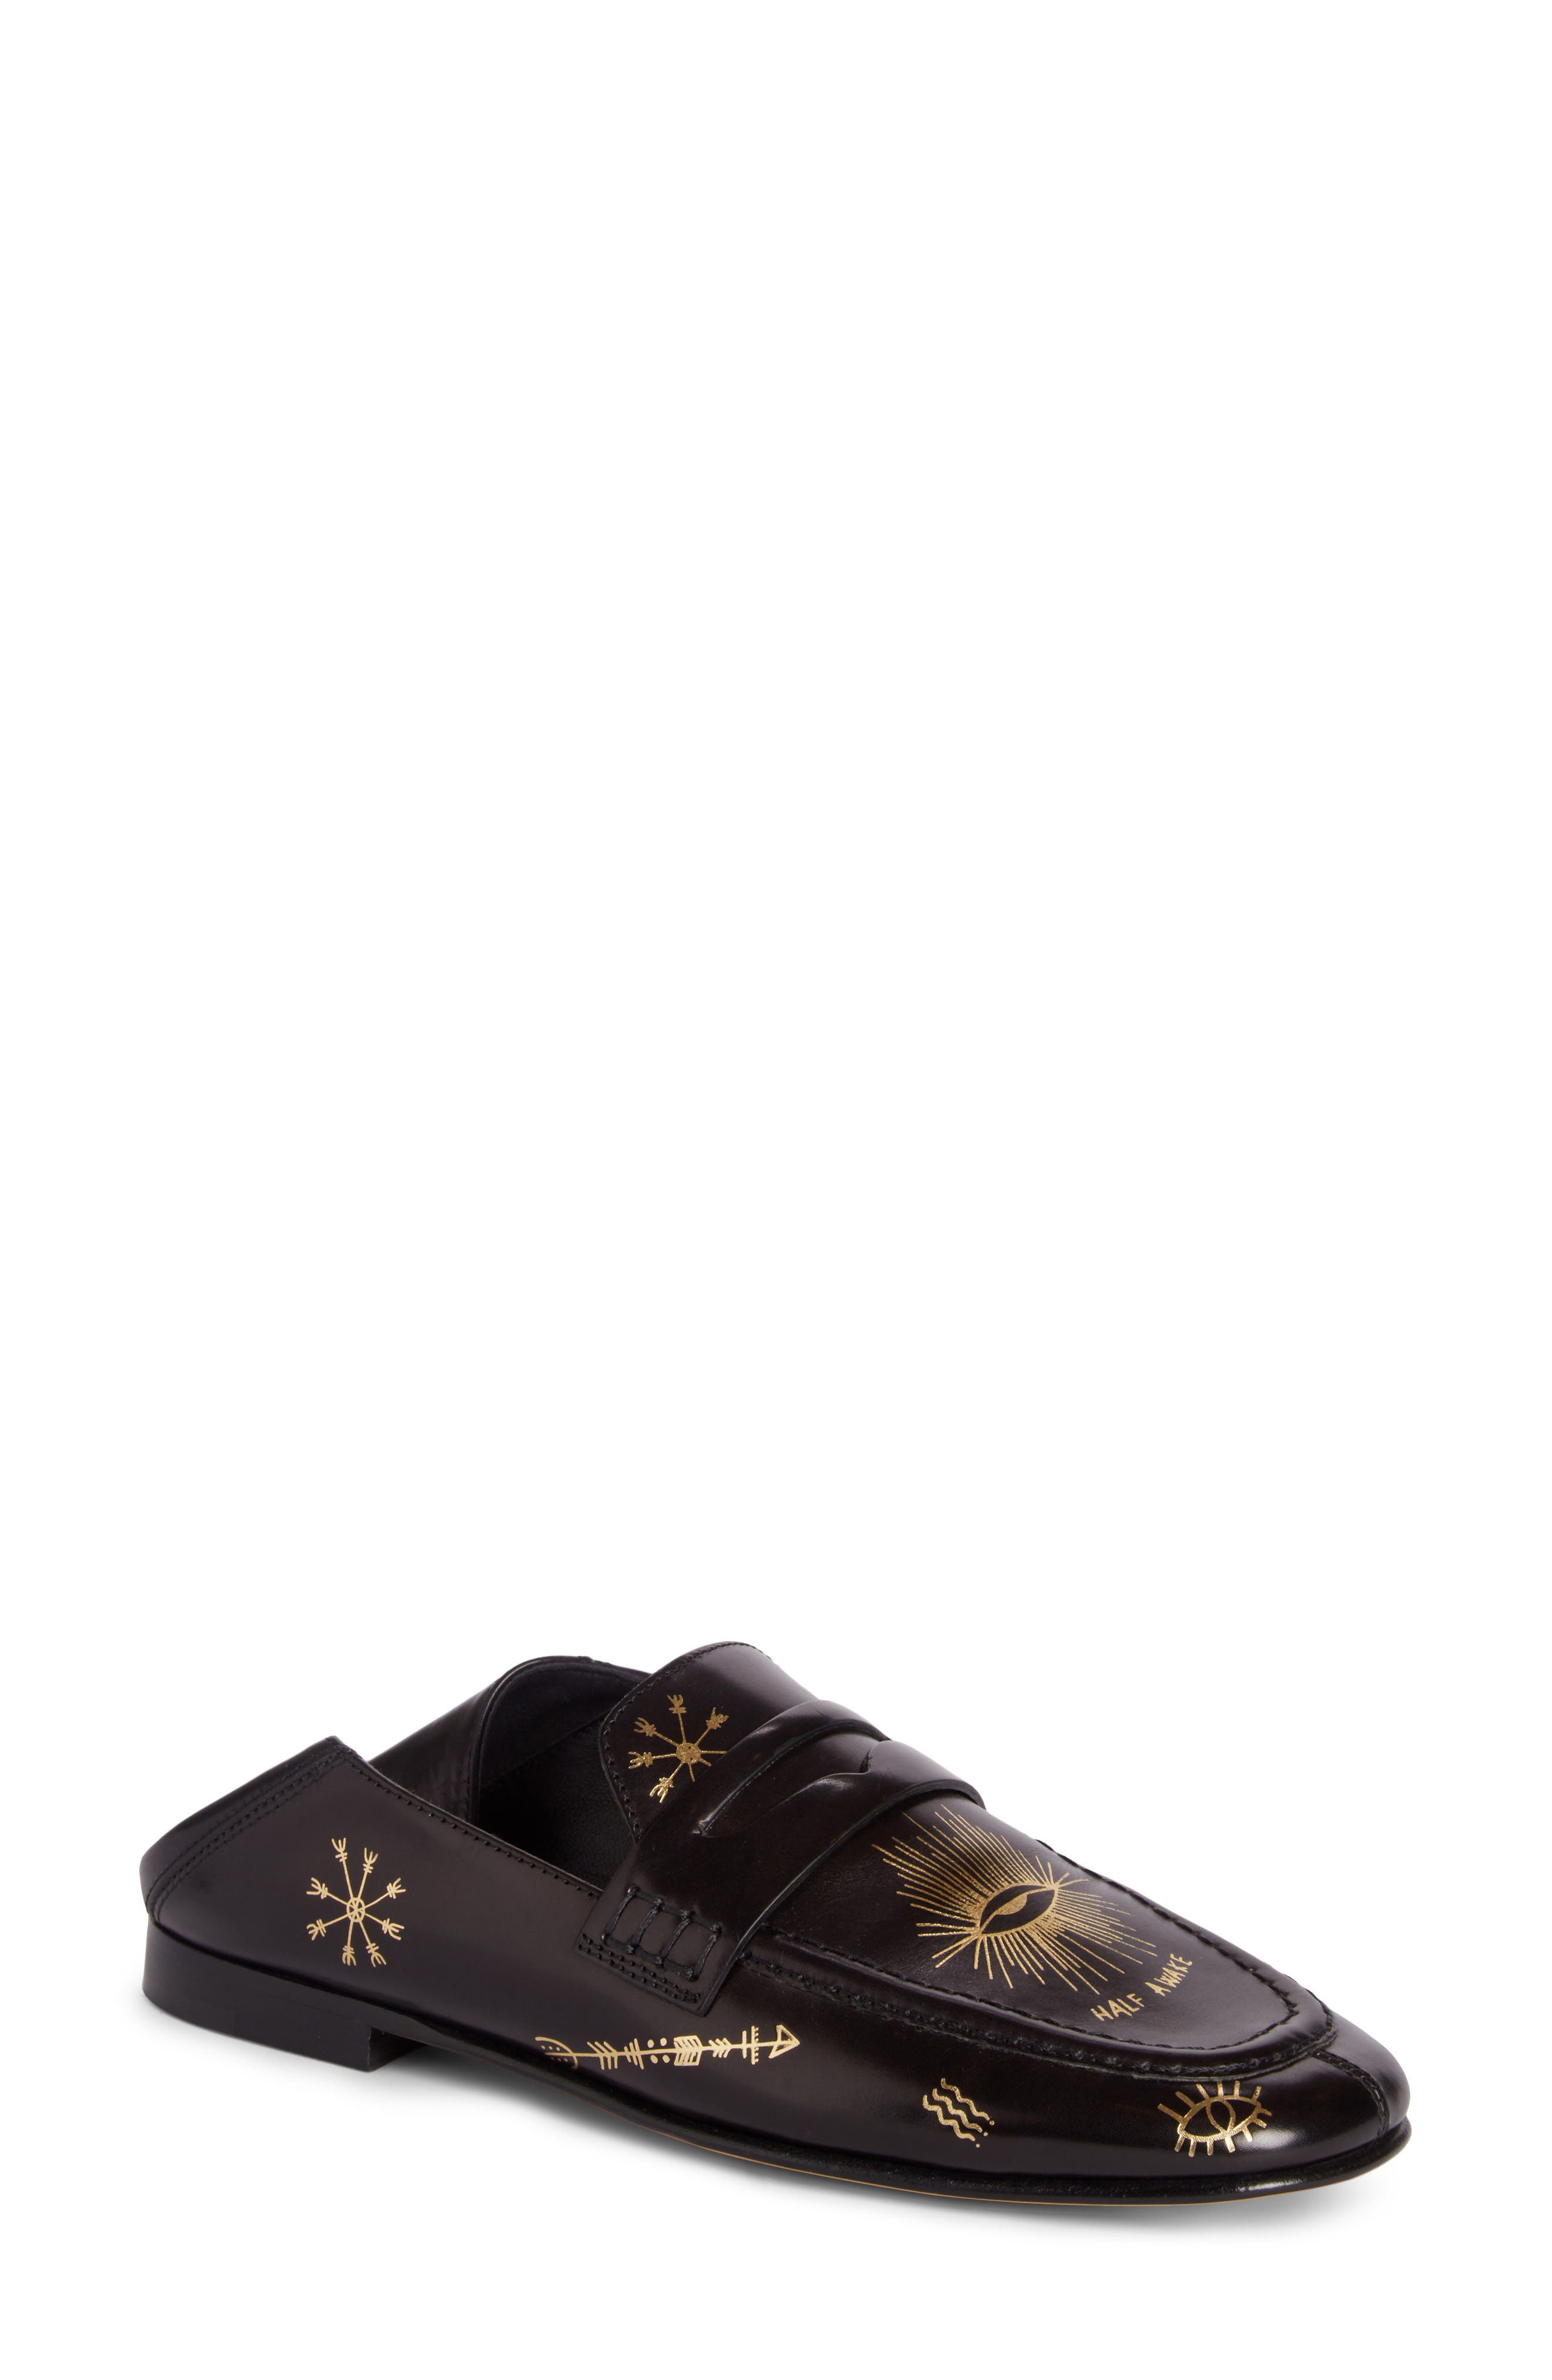 Fezzy Print Convertible Loafer,                         Main,                         color, Metallic Black